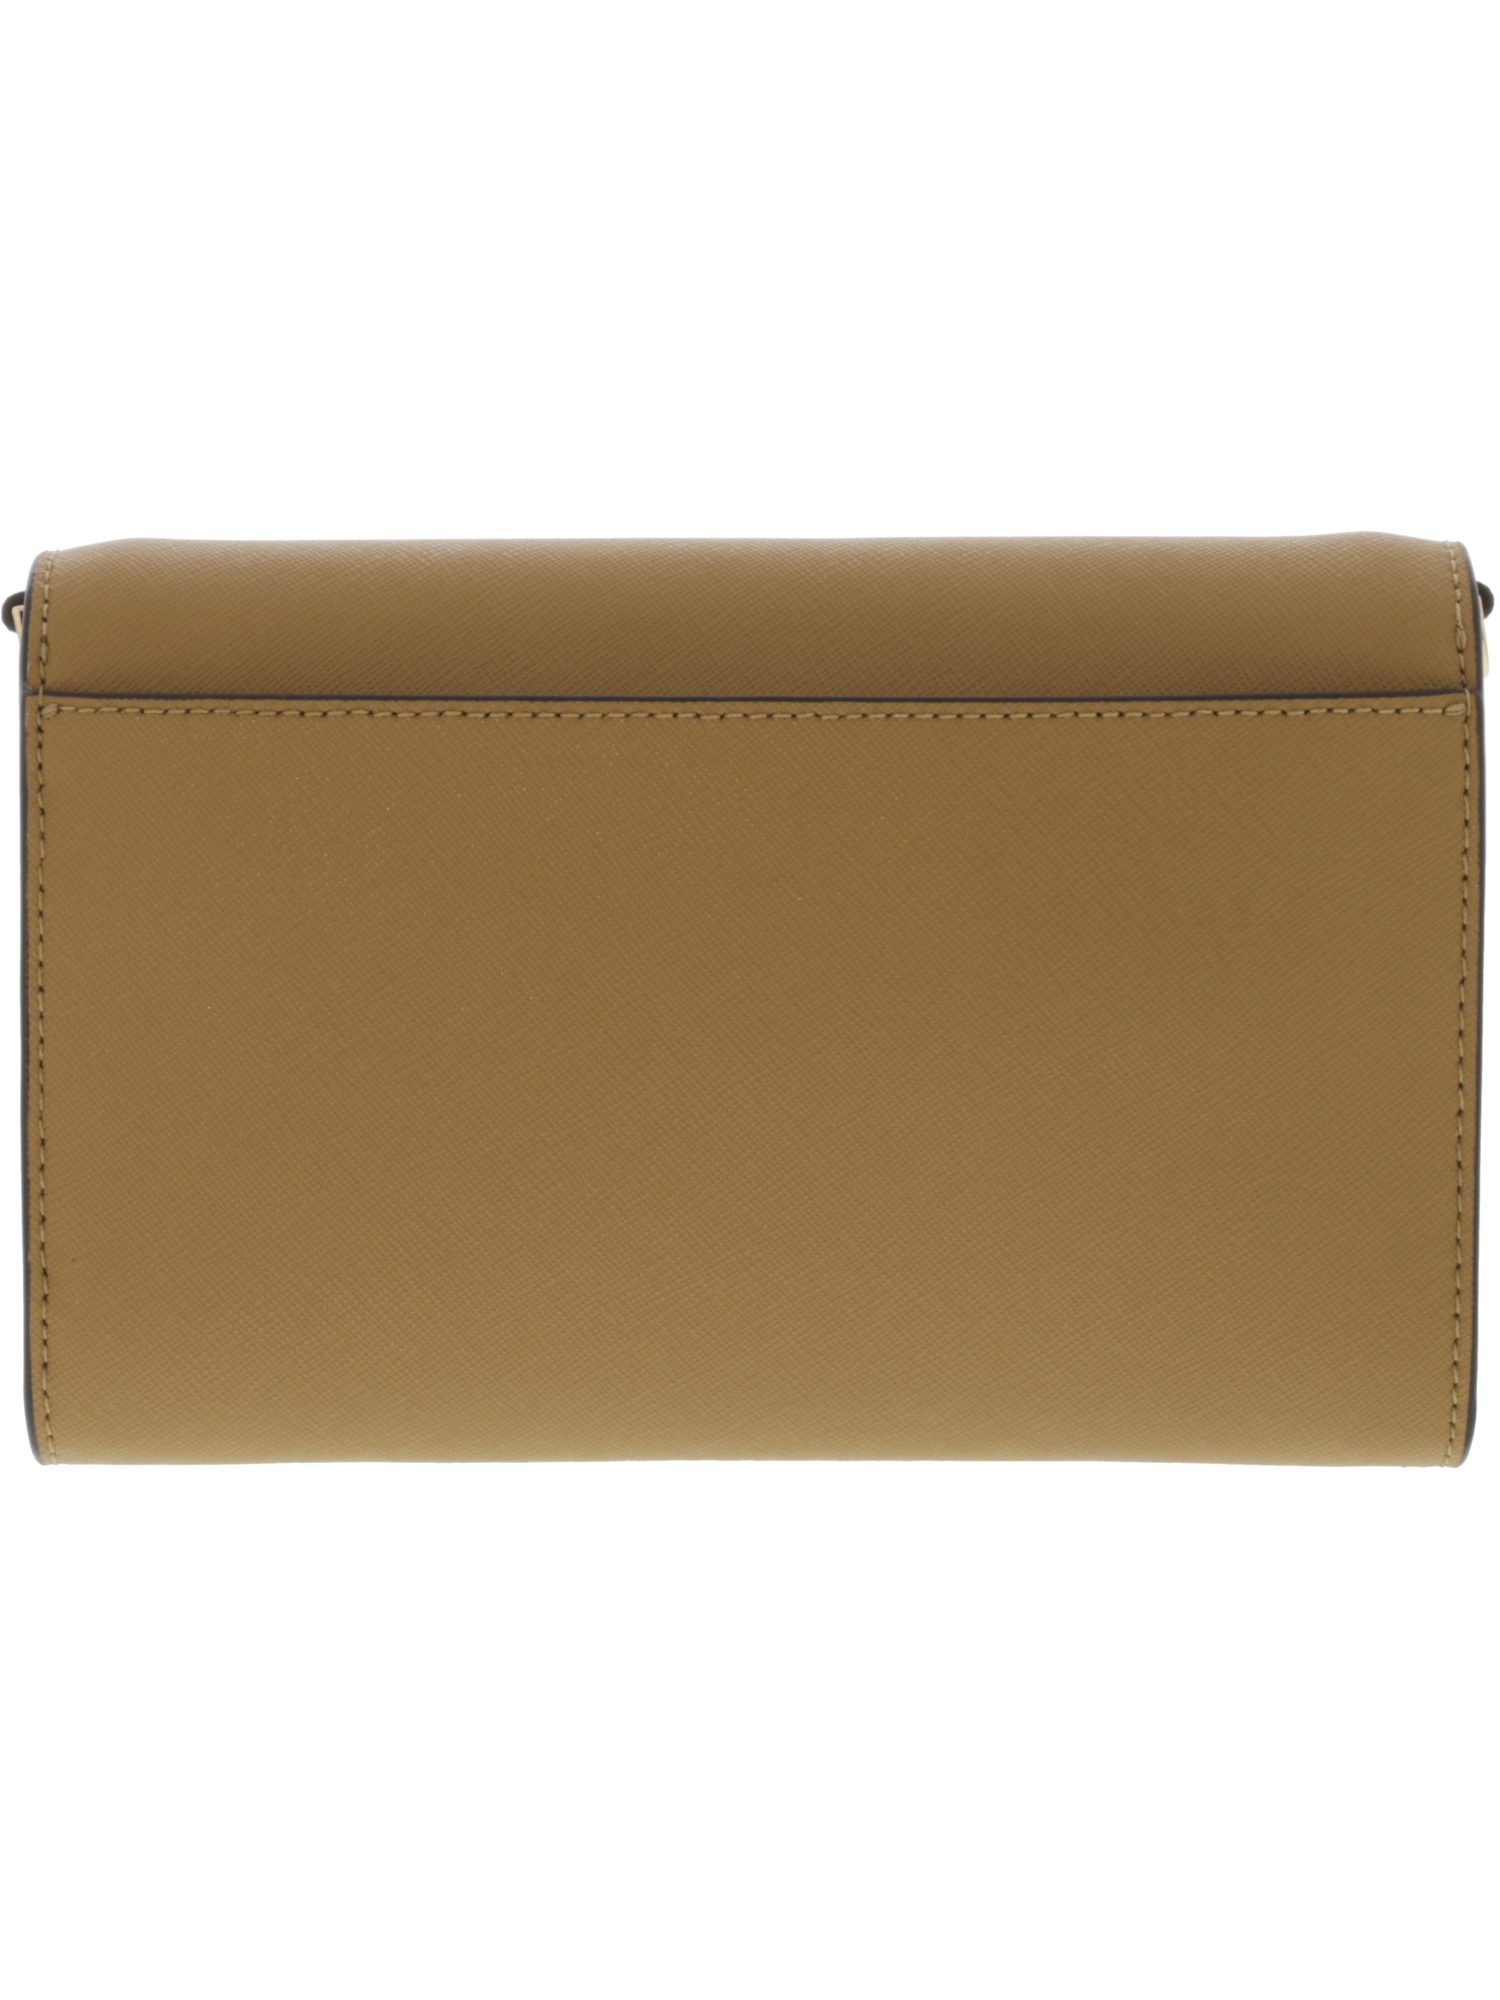 Tory-Burch-Women-039-s-Robinson-Chain-Leather-Wallet